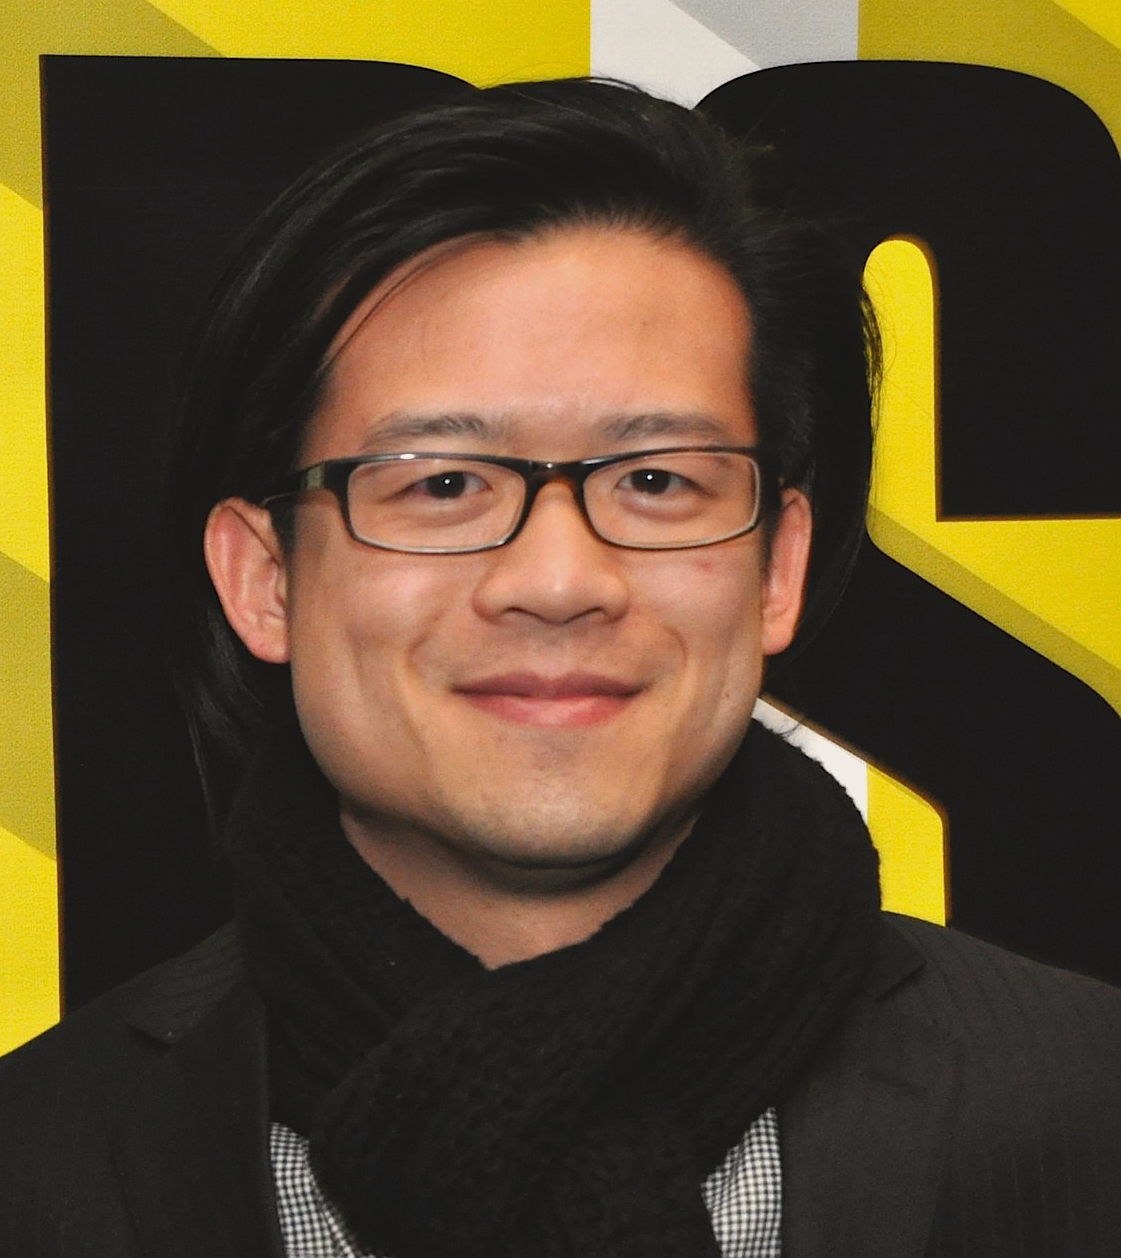 Andrew K Li (co-producer)   Andrew is from Hong Kong and is based in New York. He has produced features and shorts that have screened at international film festivals, including the prestigious New Directors/New Films series presented by MoMA and the Cannes Film Festival. He also produced a TV movie, 5 States of Fear (2014), which was backed by NBCUniversal, and a number of commercial spots. Li recently graduated with an MFA in Creative Producing from Columbia University's Graduate School of the Arts. He also served as a jury member for the Asian American International Film Festival and as Assistant Director of the Columbia University Film Festival. Recently, he produced Tim O'Connor's feature film The Undiscovered Country.